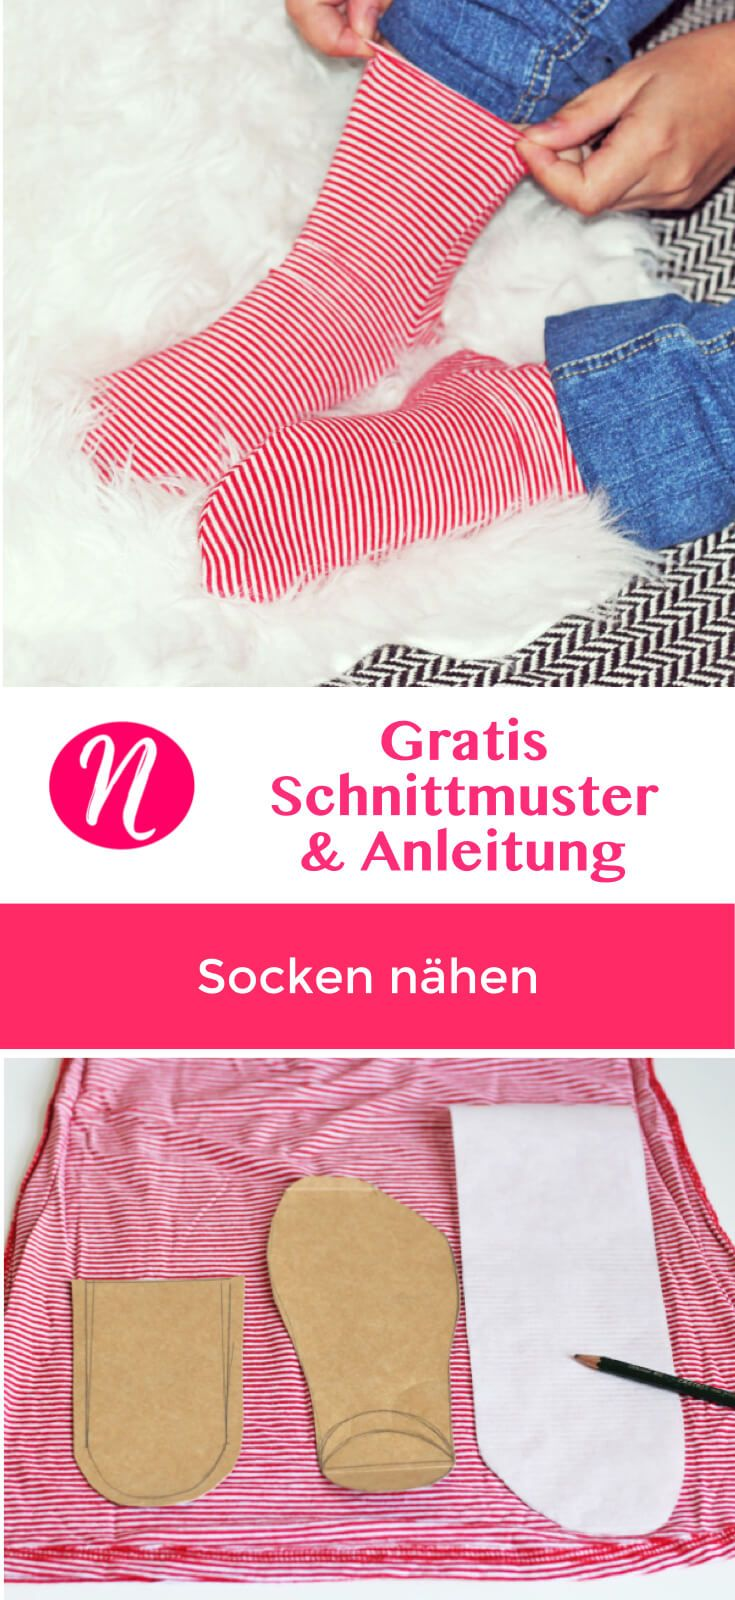 Tutorial - Nähe deine eigenen Socken mit einer einfachen Anleitung - für Damen, Herren und Kinder ✂ Nähtalente - Magazin für kostenlose Schnittmuster ✂ Sew you own socks with this easy tutorial for Jersey.